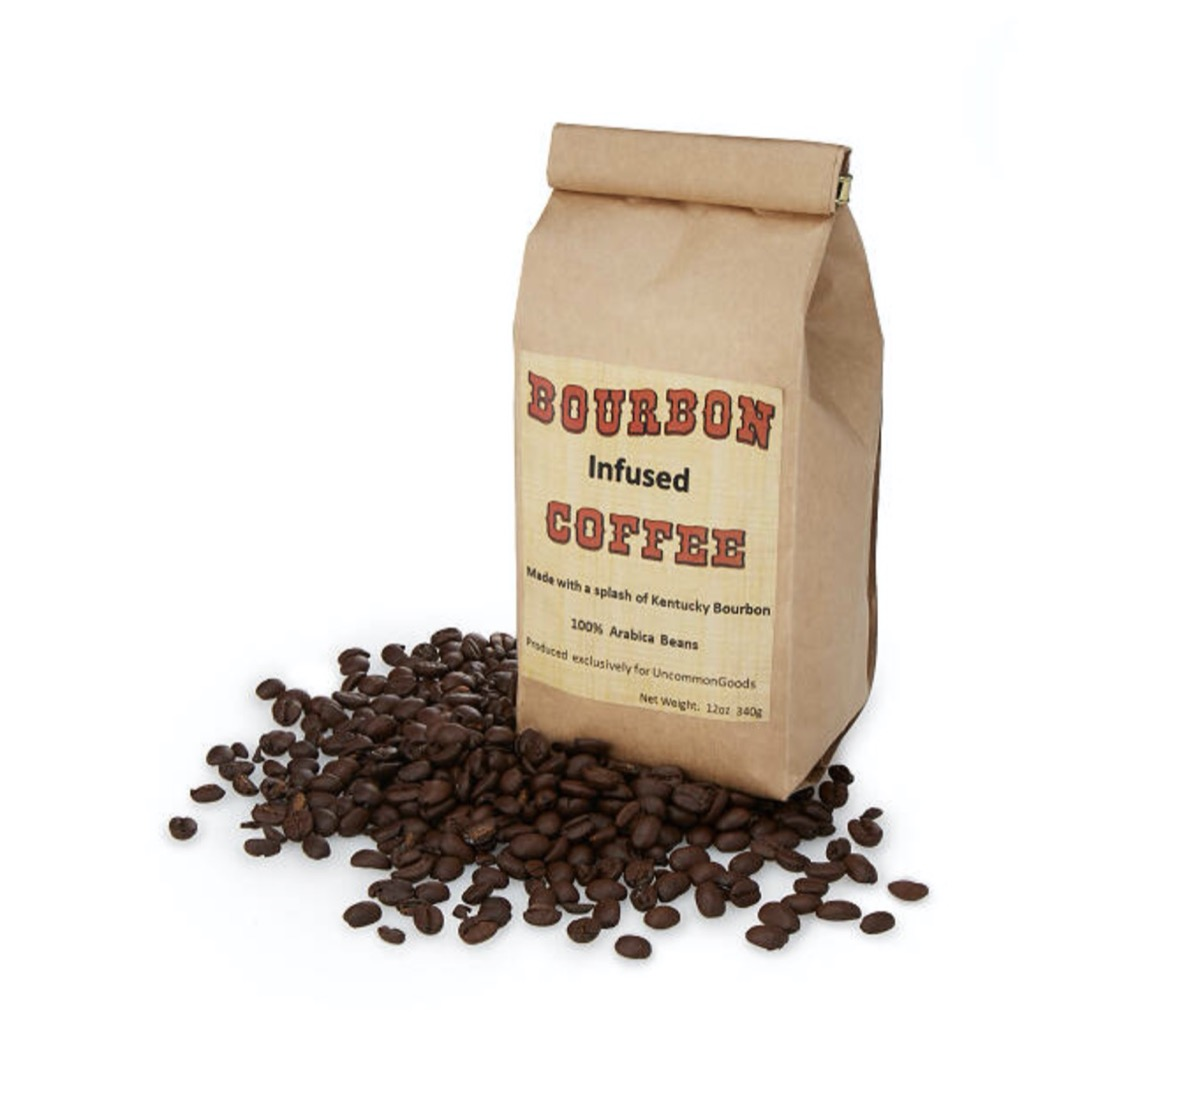 brown bag of bourbon infused coffee with coffee beans in front of it